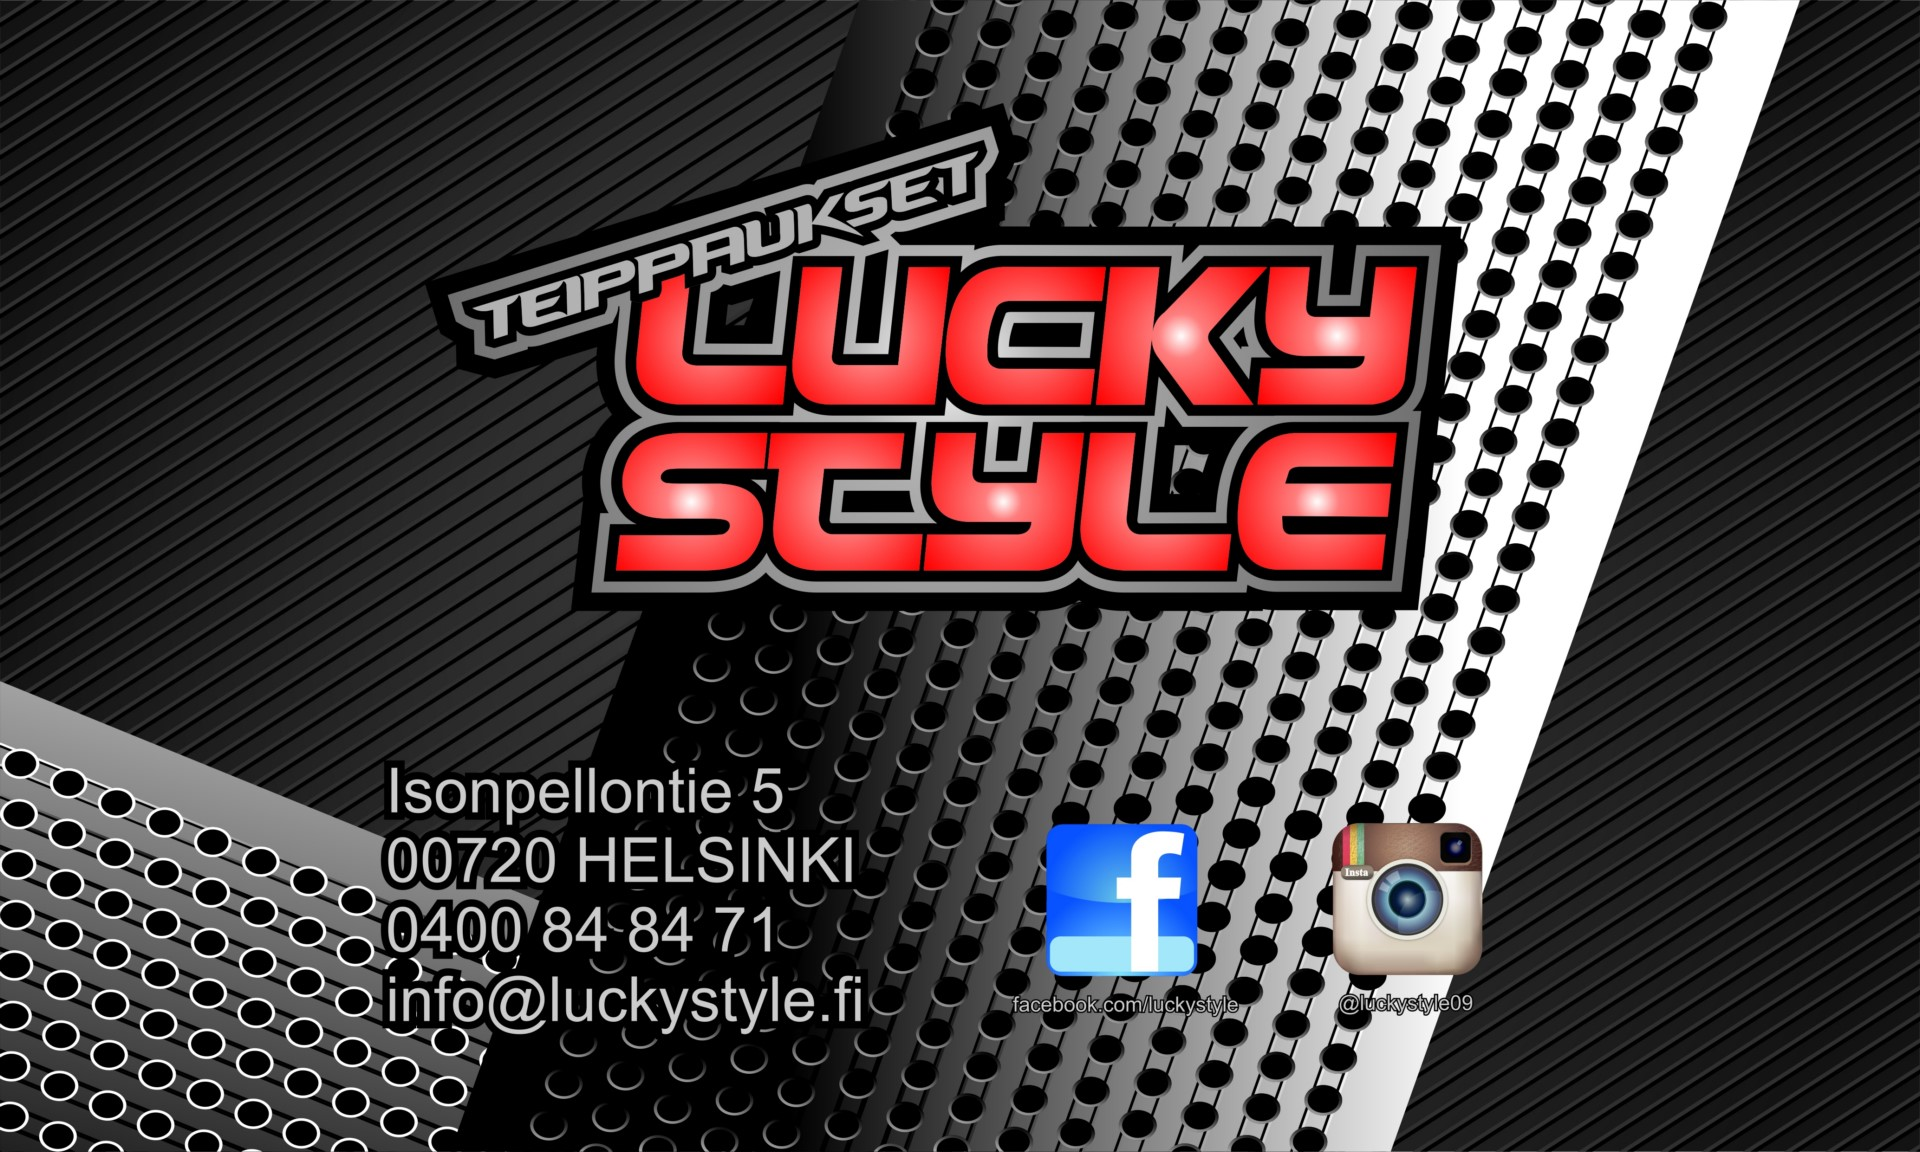 LUCKY STYLE